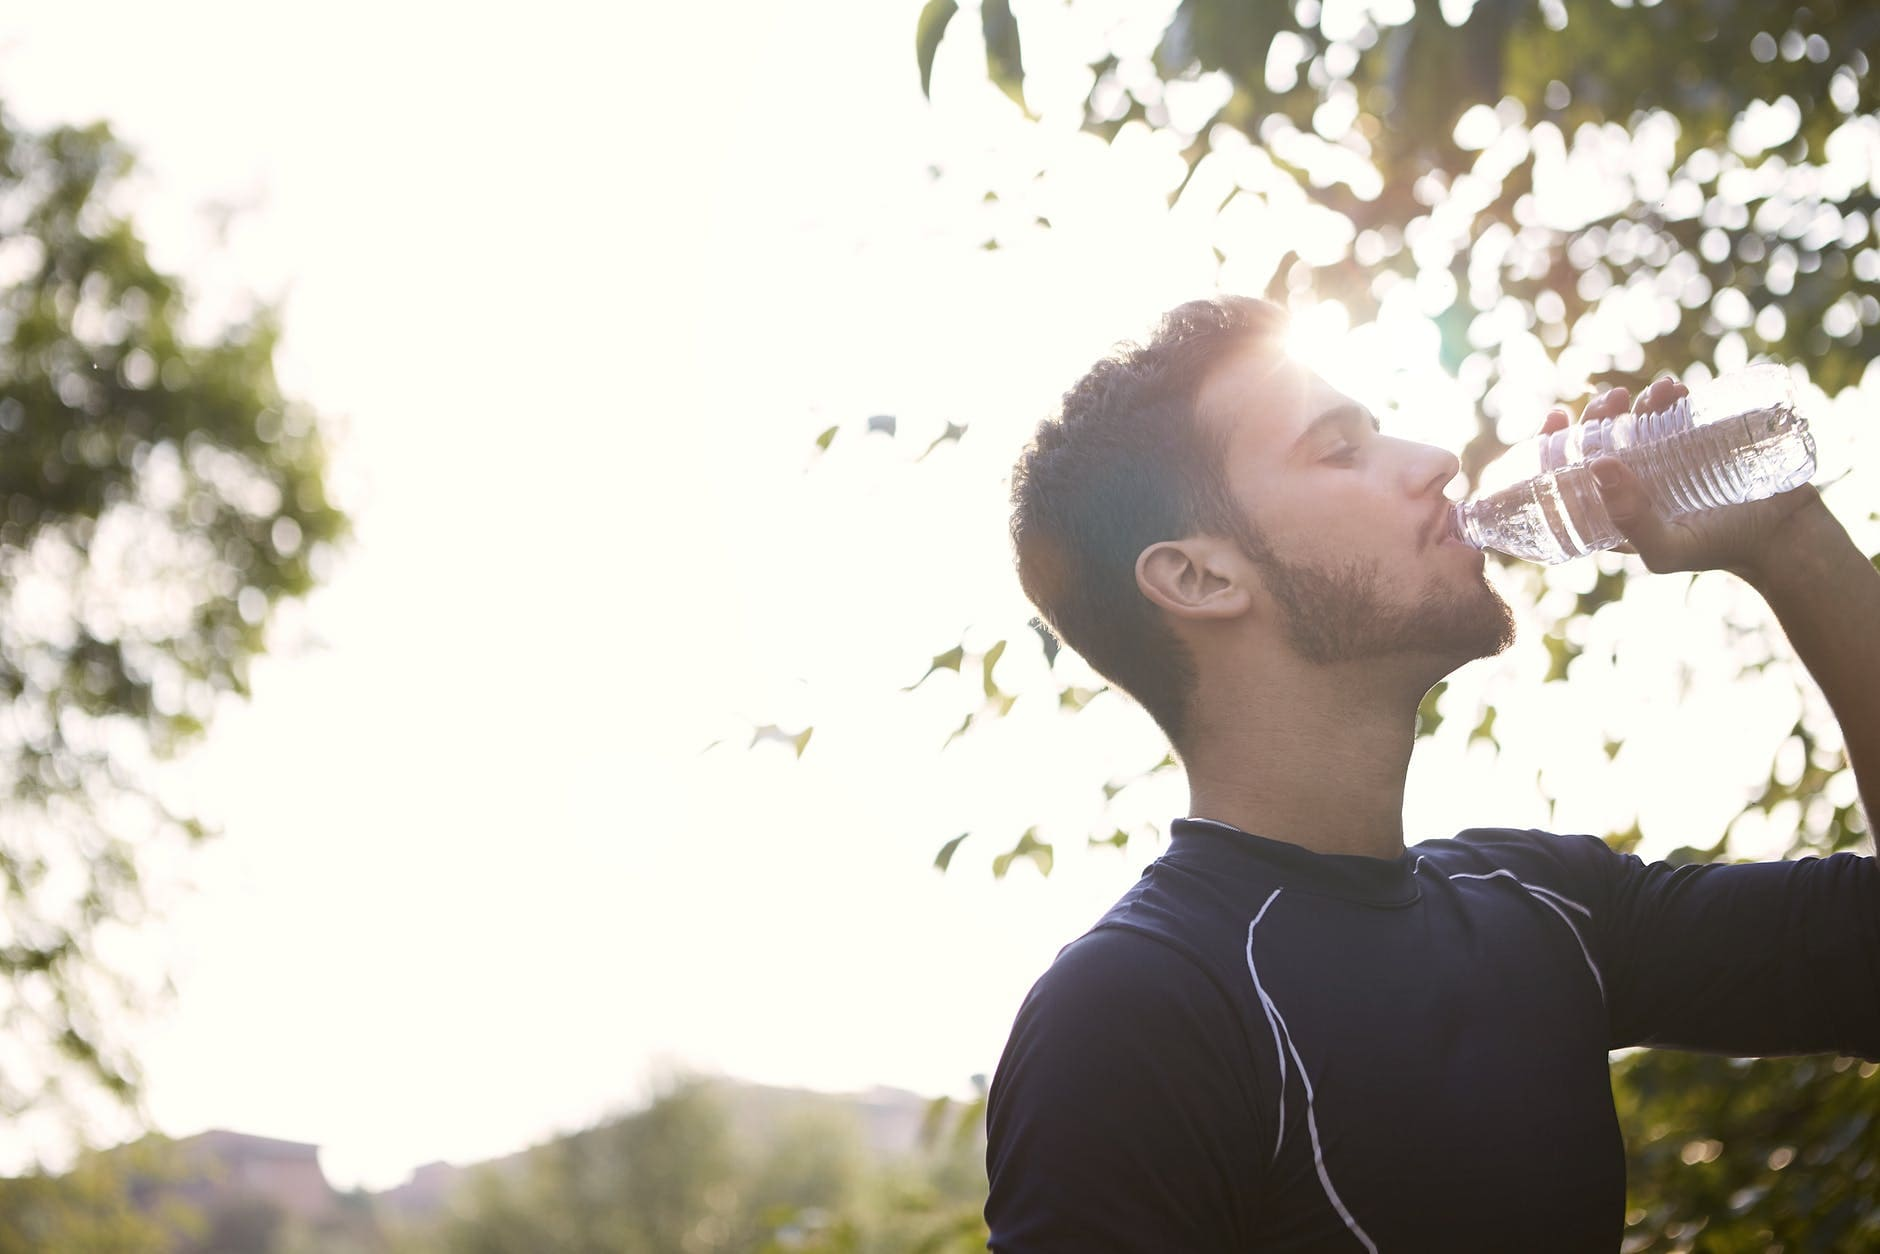 What are the symptoms of dehydration in adults?